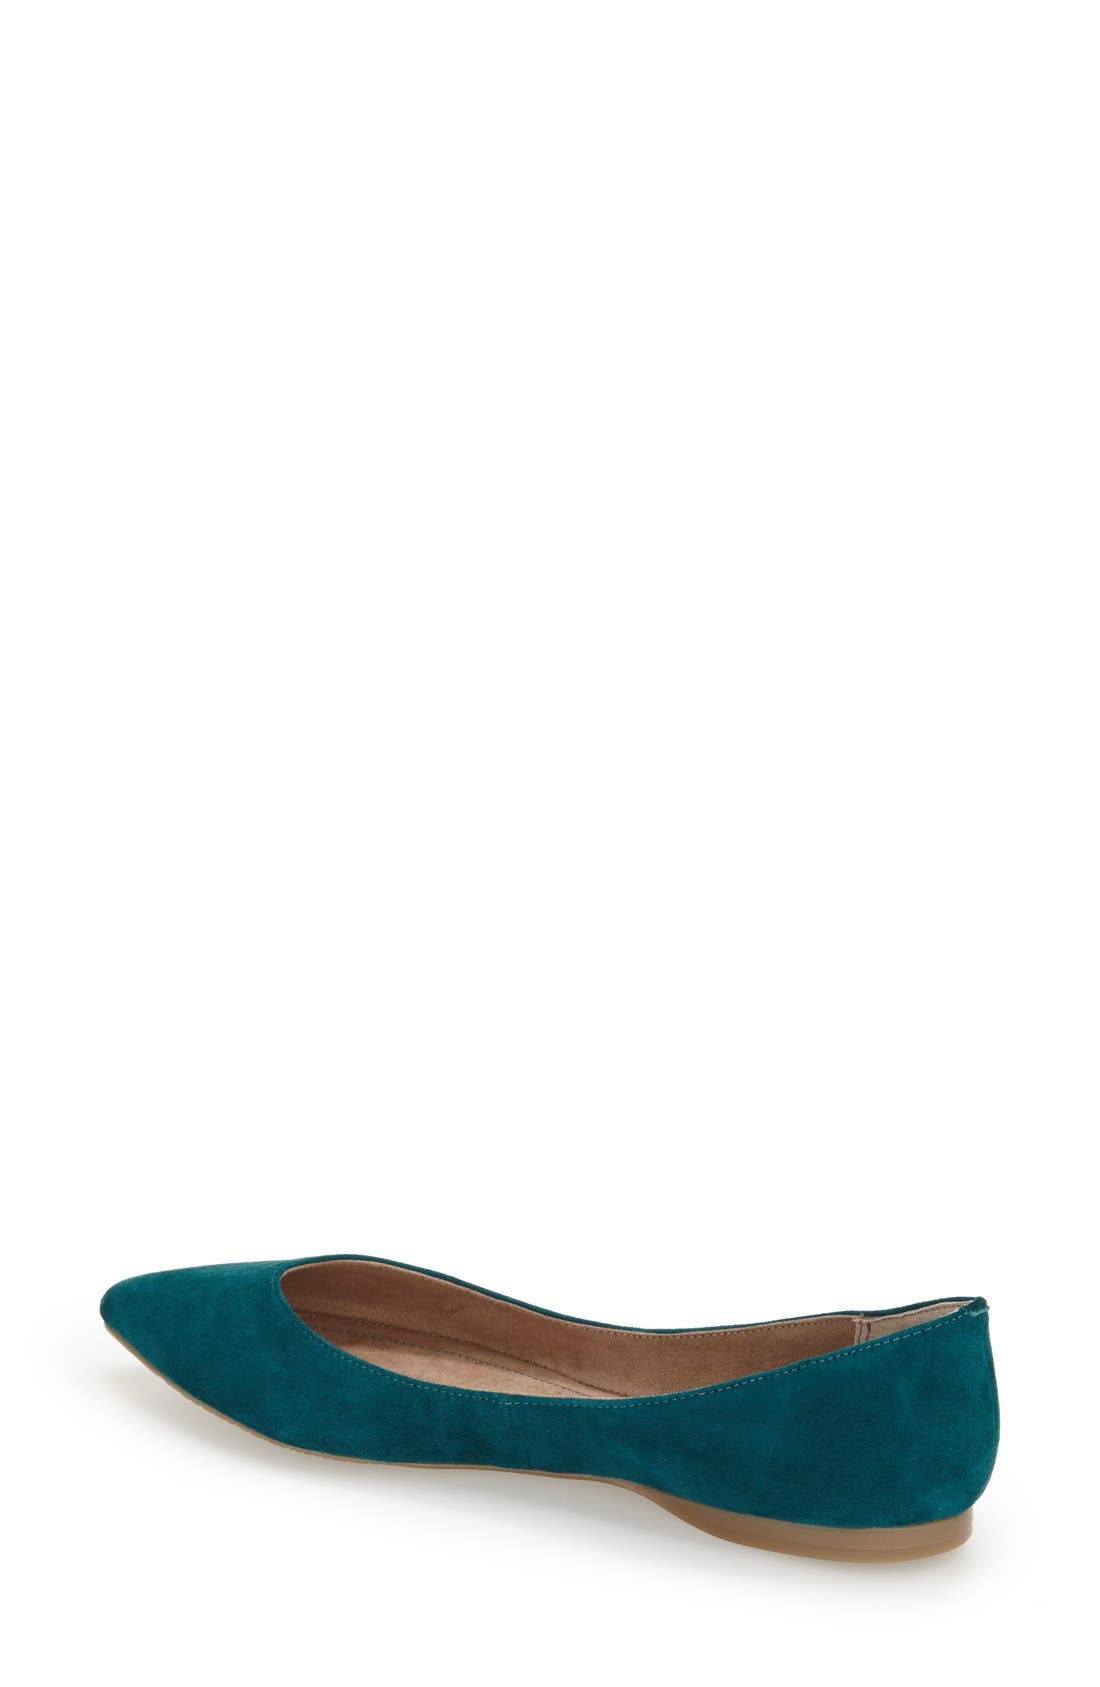 ,                             'Moveover' Pointy Toe Leather Flat,                             Alternate thumbnail 18, color,                             343